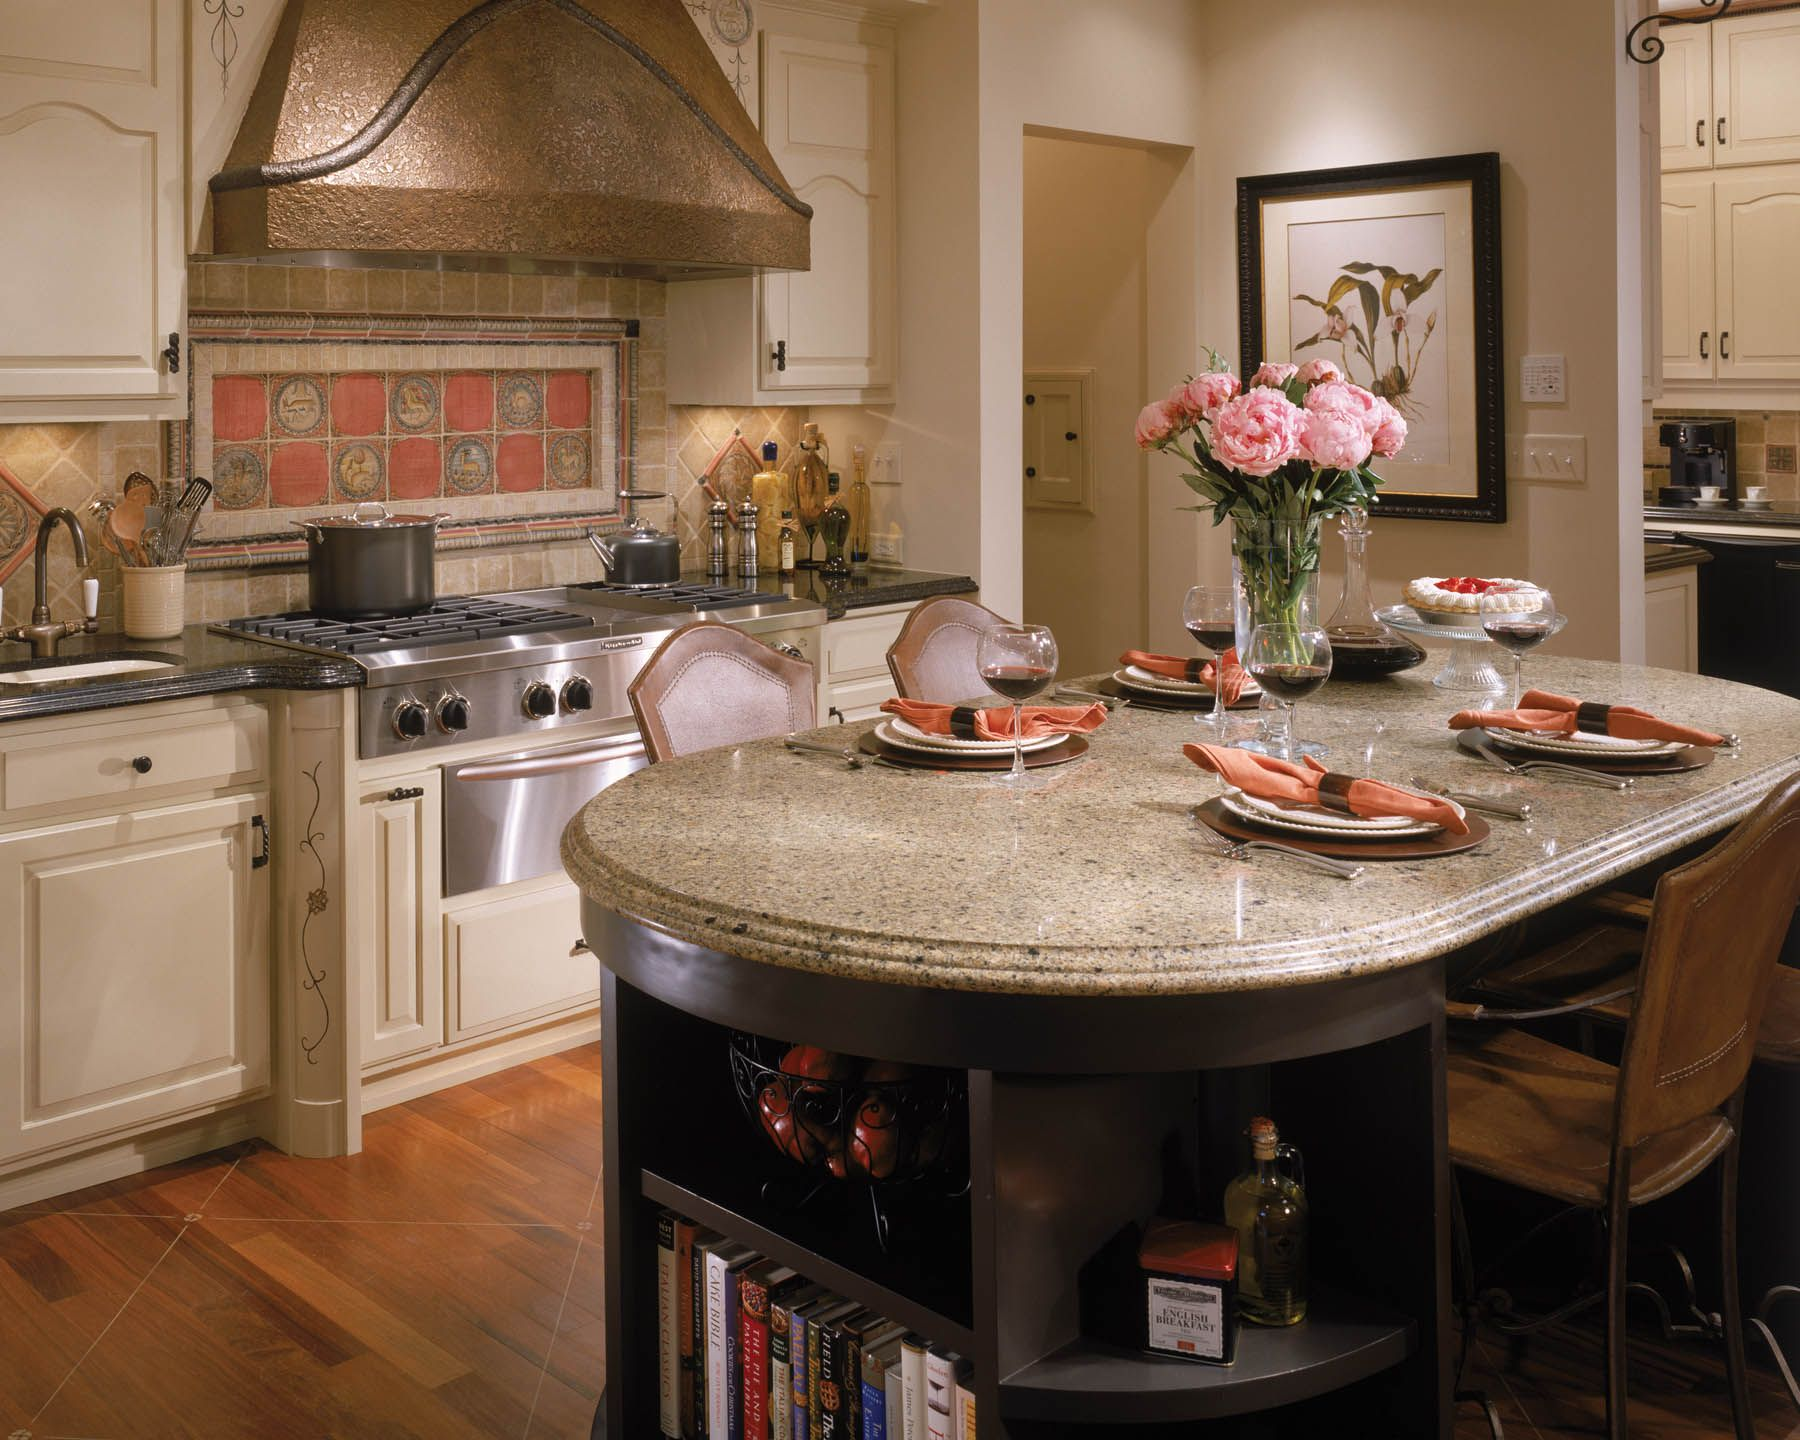 Kitchen Island Centerpiece Cabinet Design App Islands With Storage And Seating For